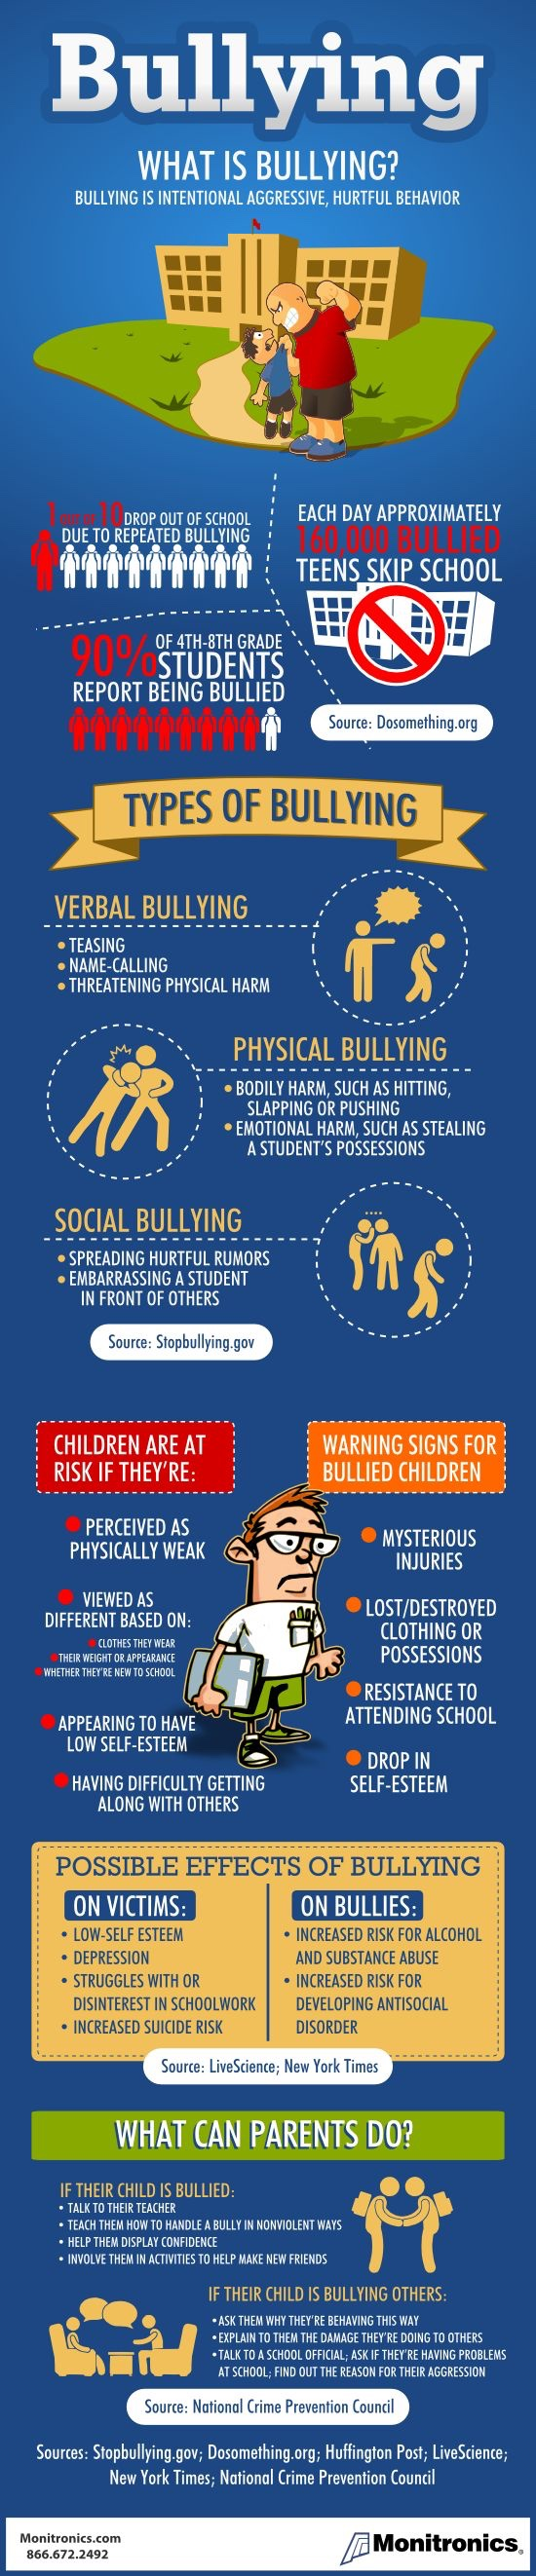 anti bullying slogans